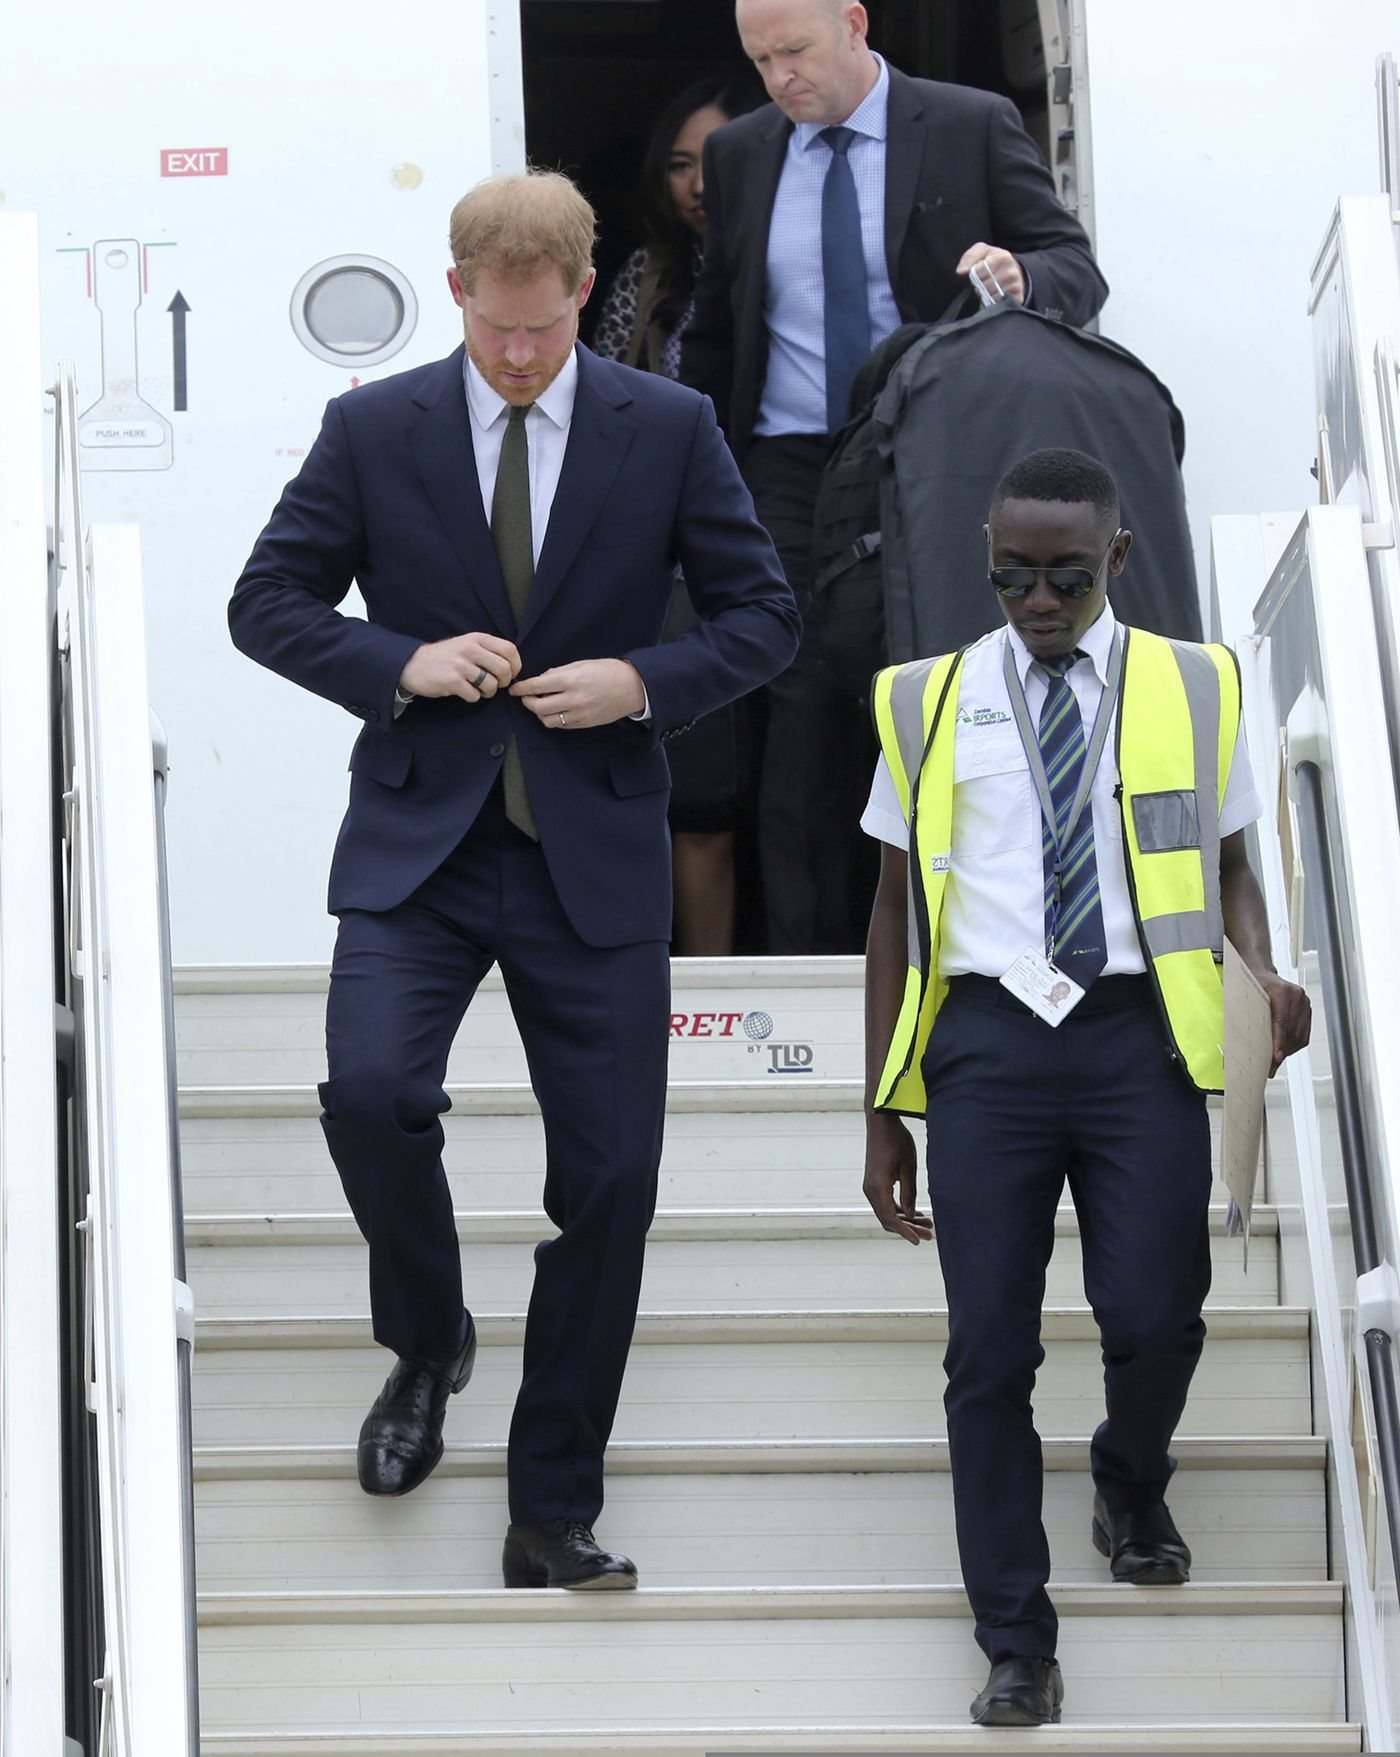 Britain's Prince Harry walks down the plane steps upon his arrival at Kenneth Kaunda airport in Lusaka, Monday, Nov. 26, 2018. Prince Harry is on a State visit to Zambia at the request of the Commonwealth office and is expected to attend various events in the Southern African country. (AP Photo/Tsvangirayi Mukwazhi)